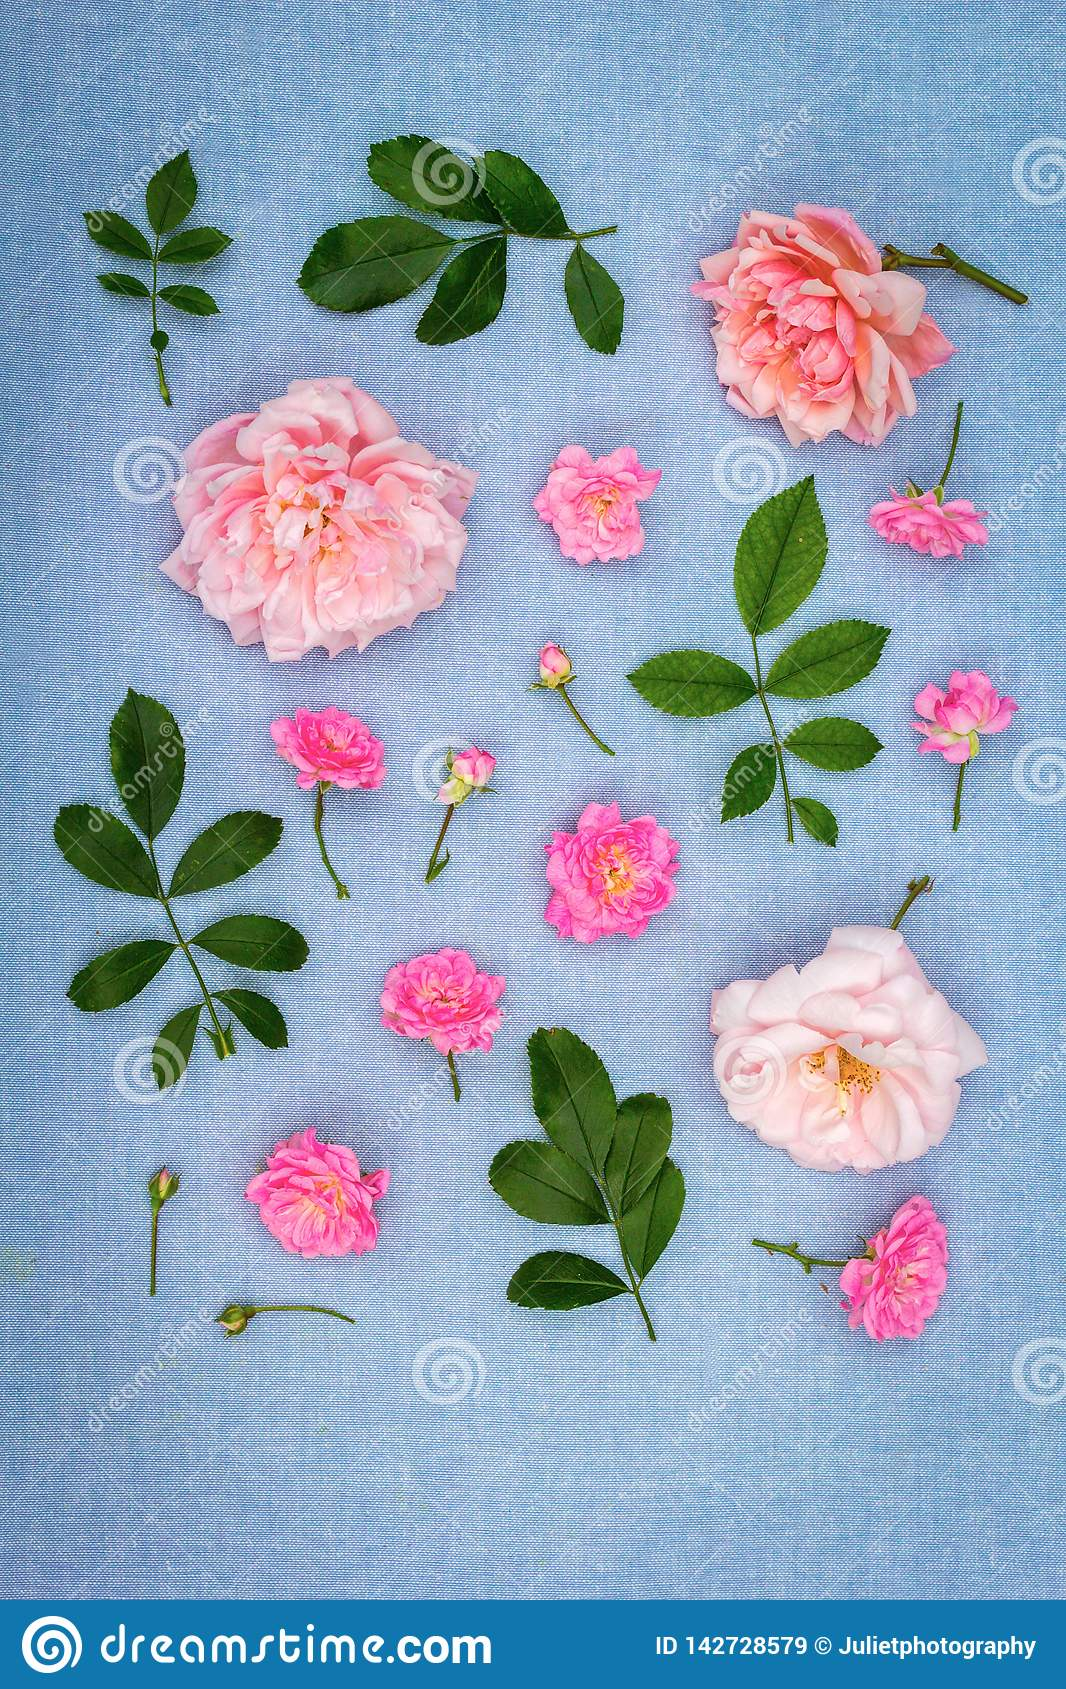 Beautifu, romantic, floral background with pink roses on blue, fabric background royalty free stock images